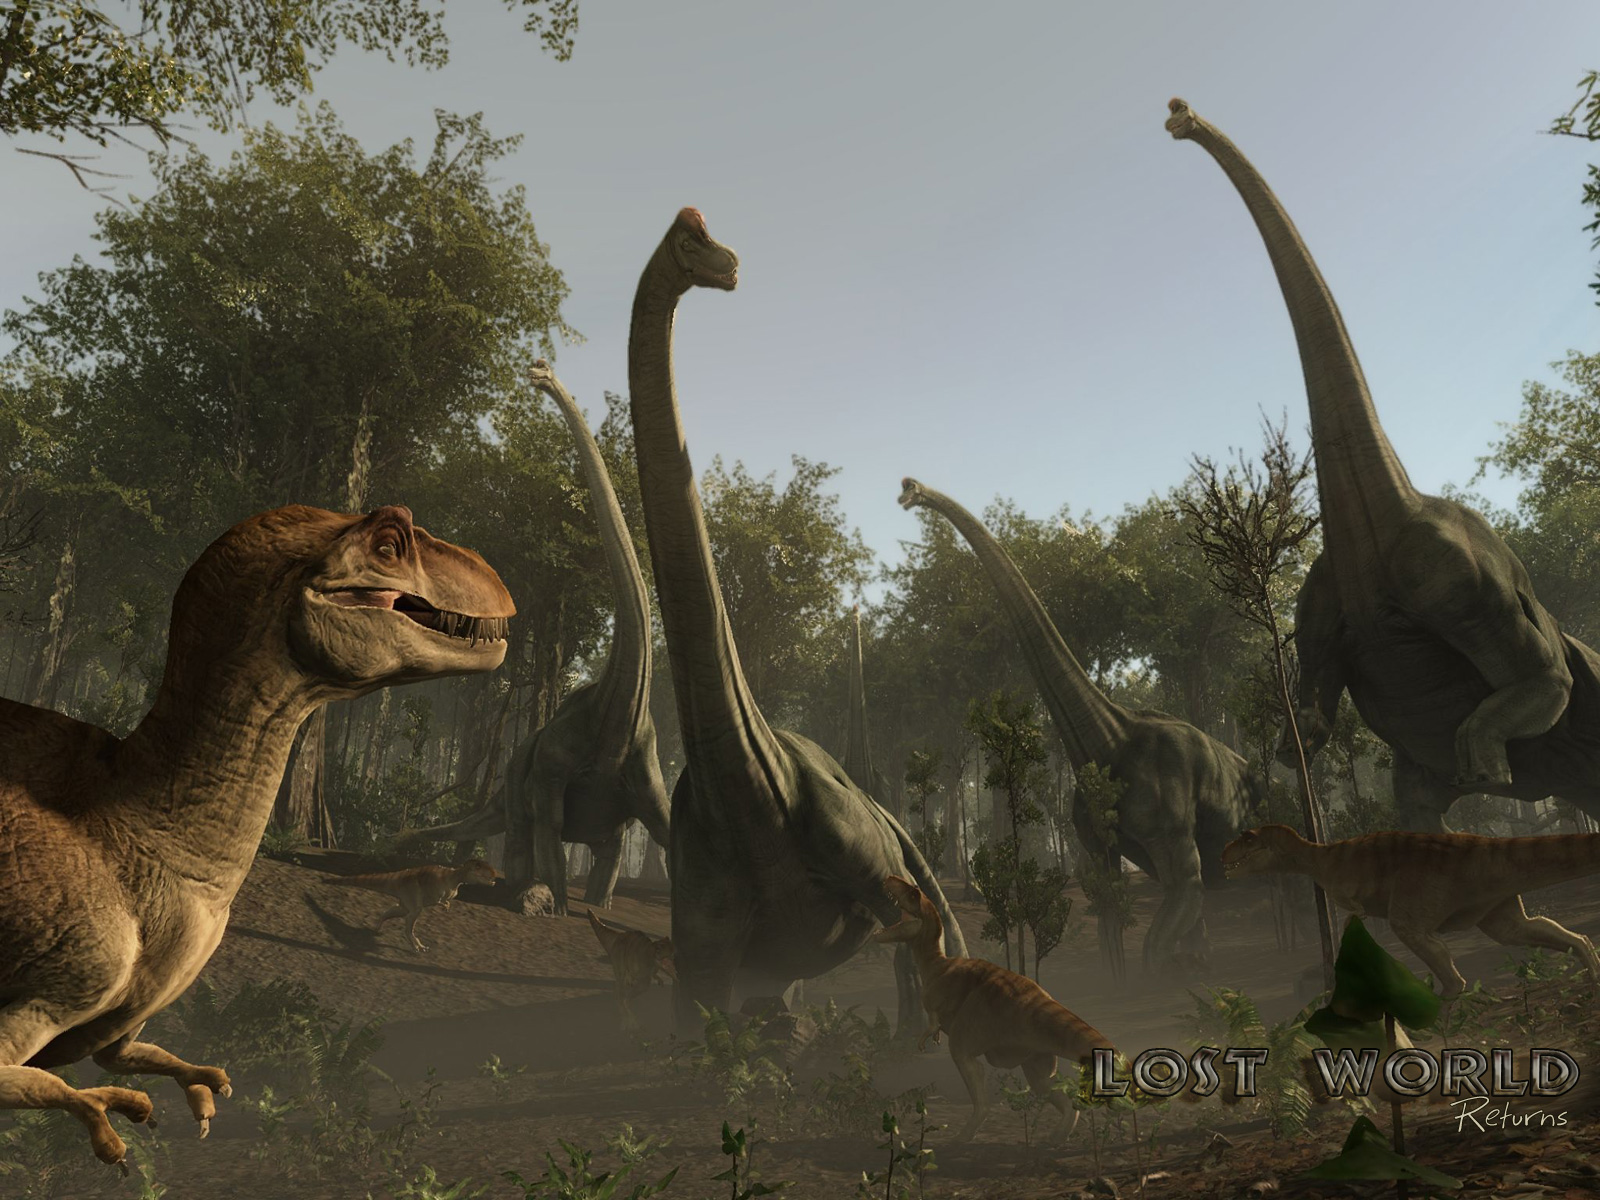 Jurassic Park The Lost World Returns In Crysis Mod Video Games